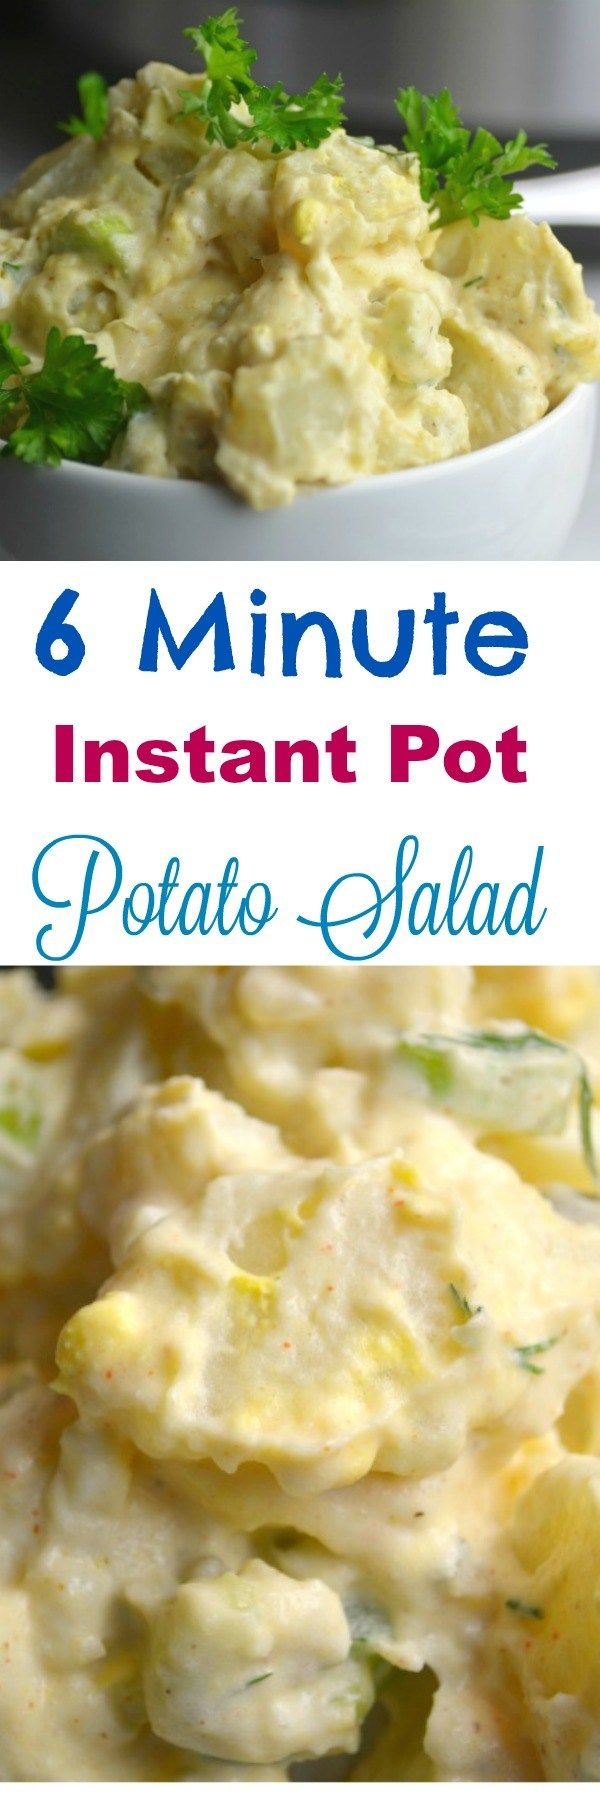 6 Minute Instant Pot Potato Salad